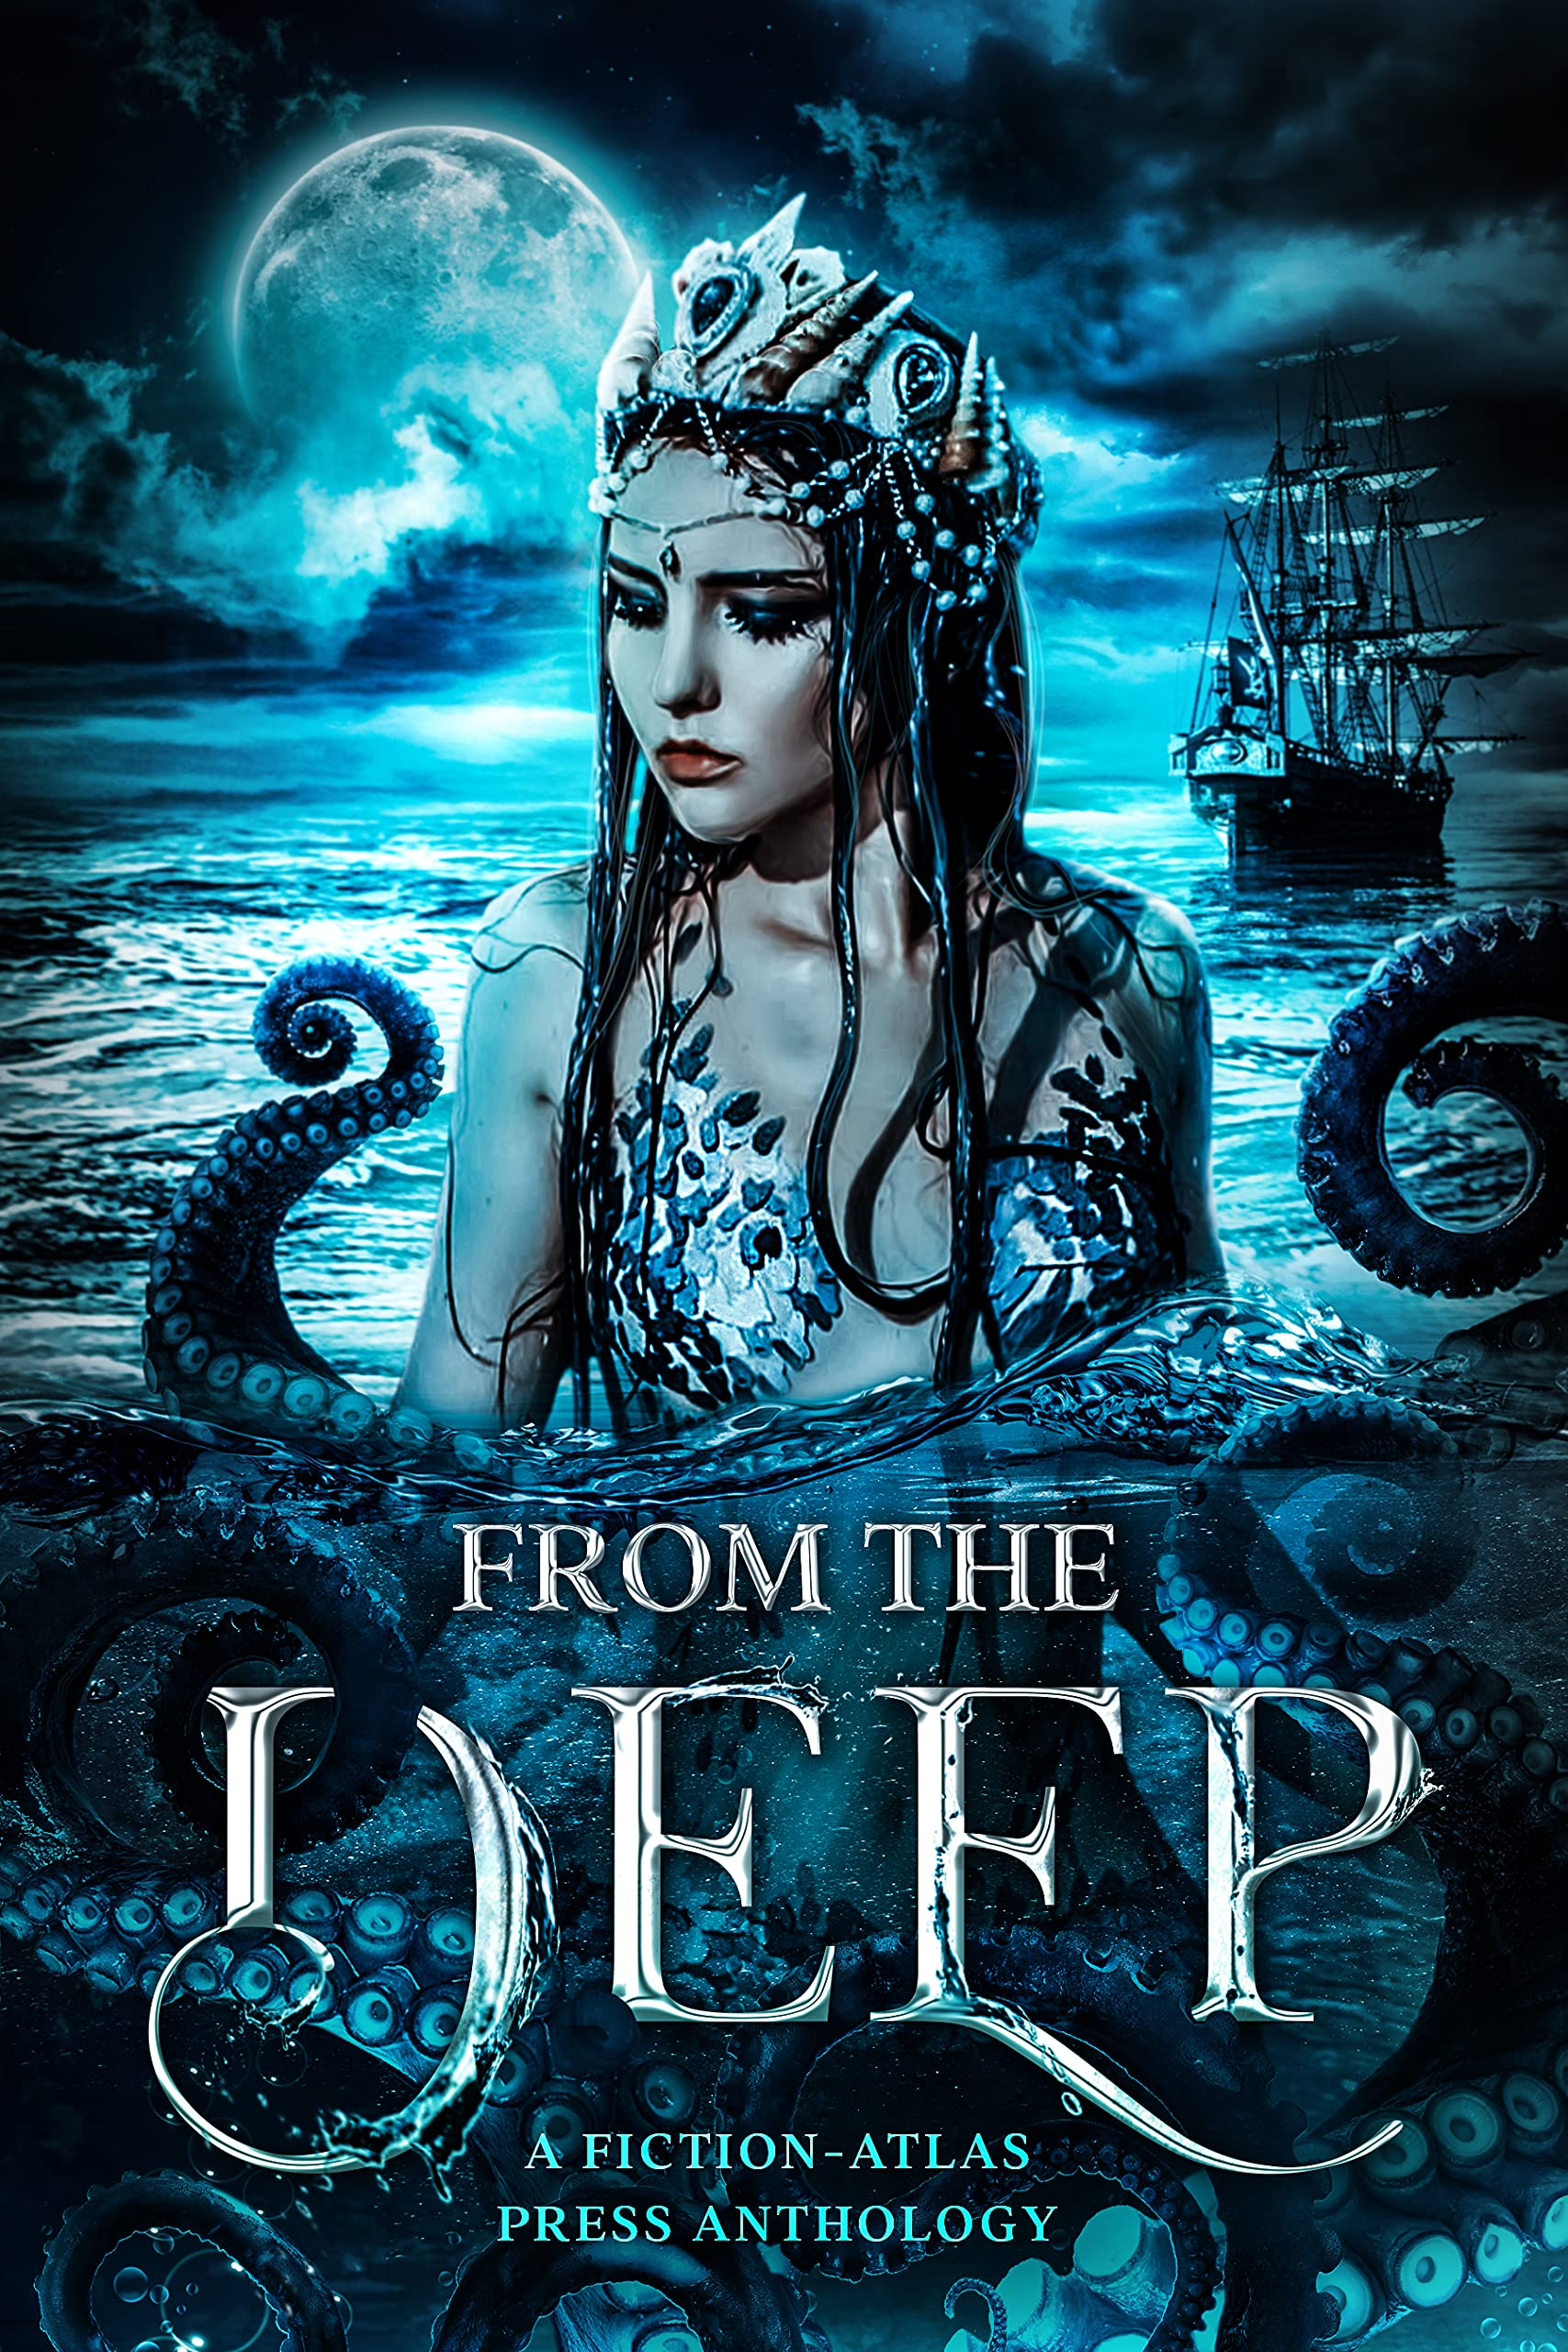 From The Deep: A Fiction-Atlas Press Anthology